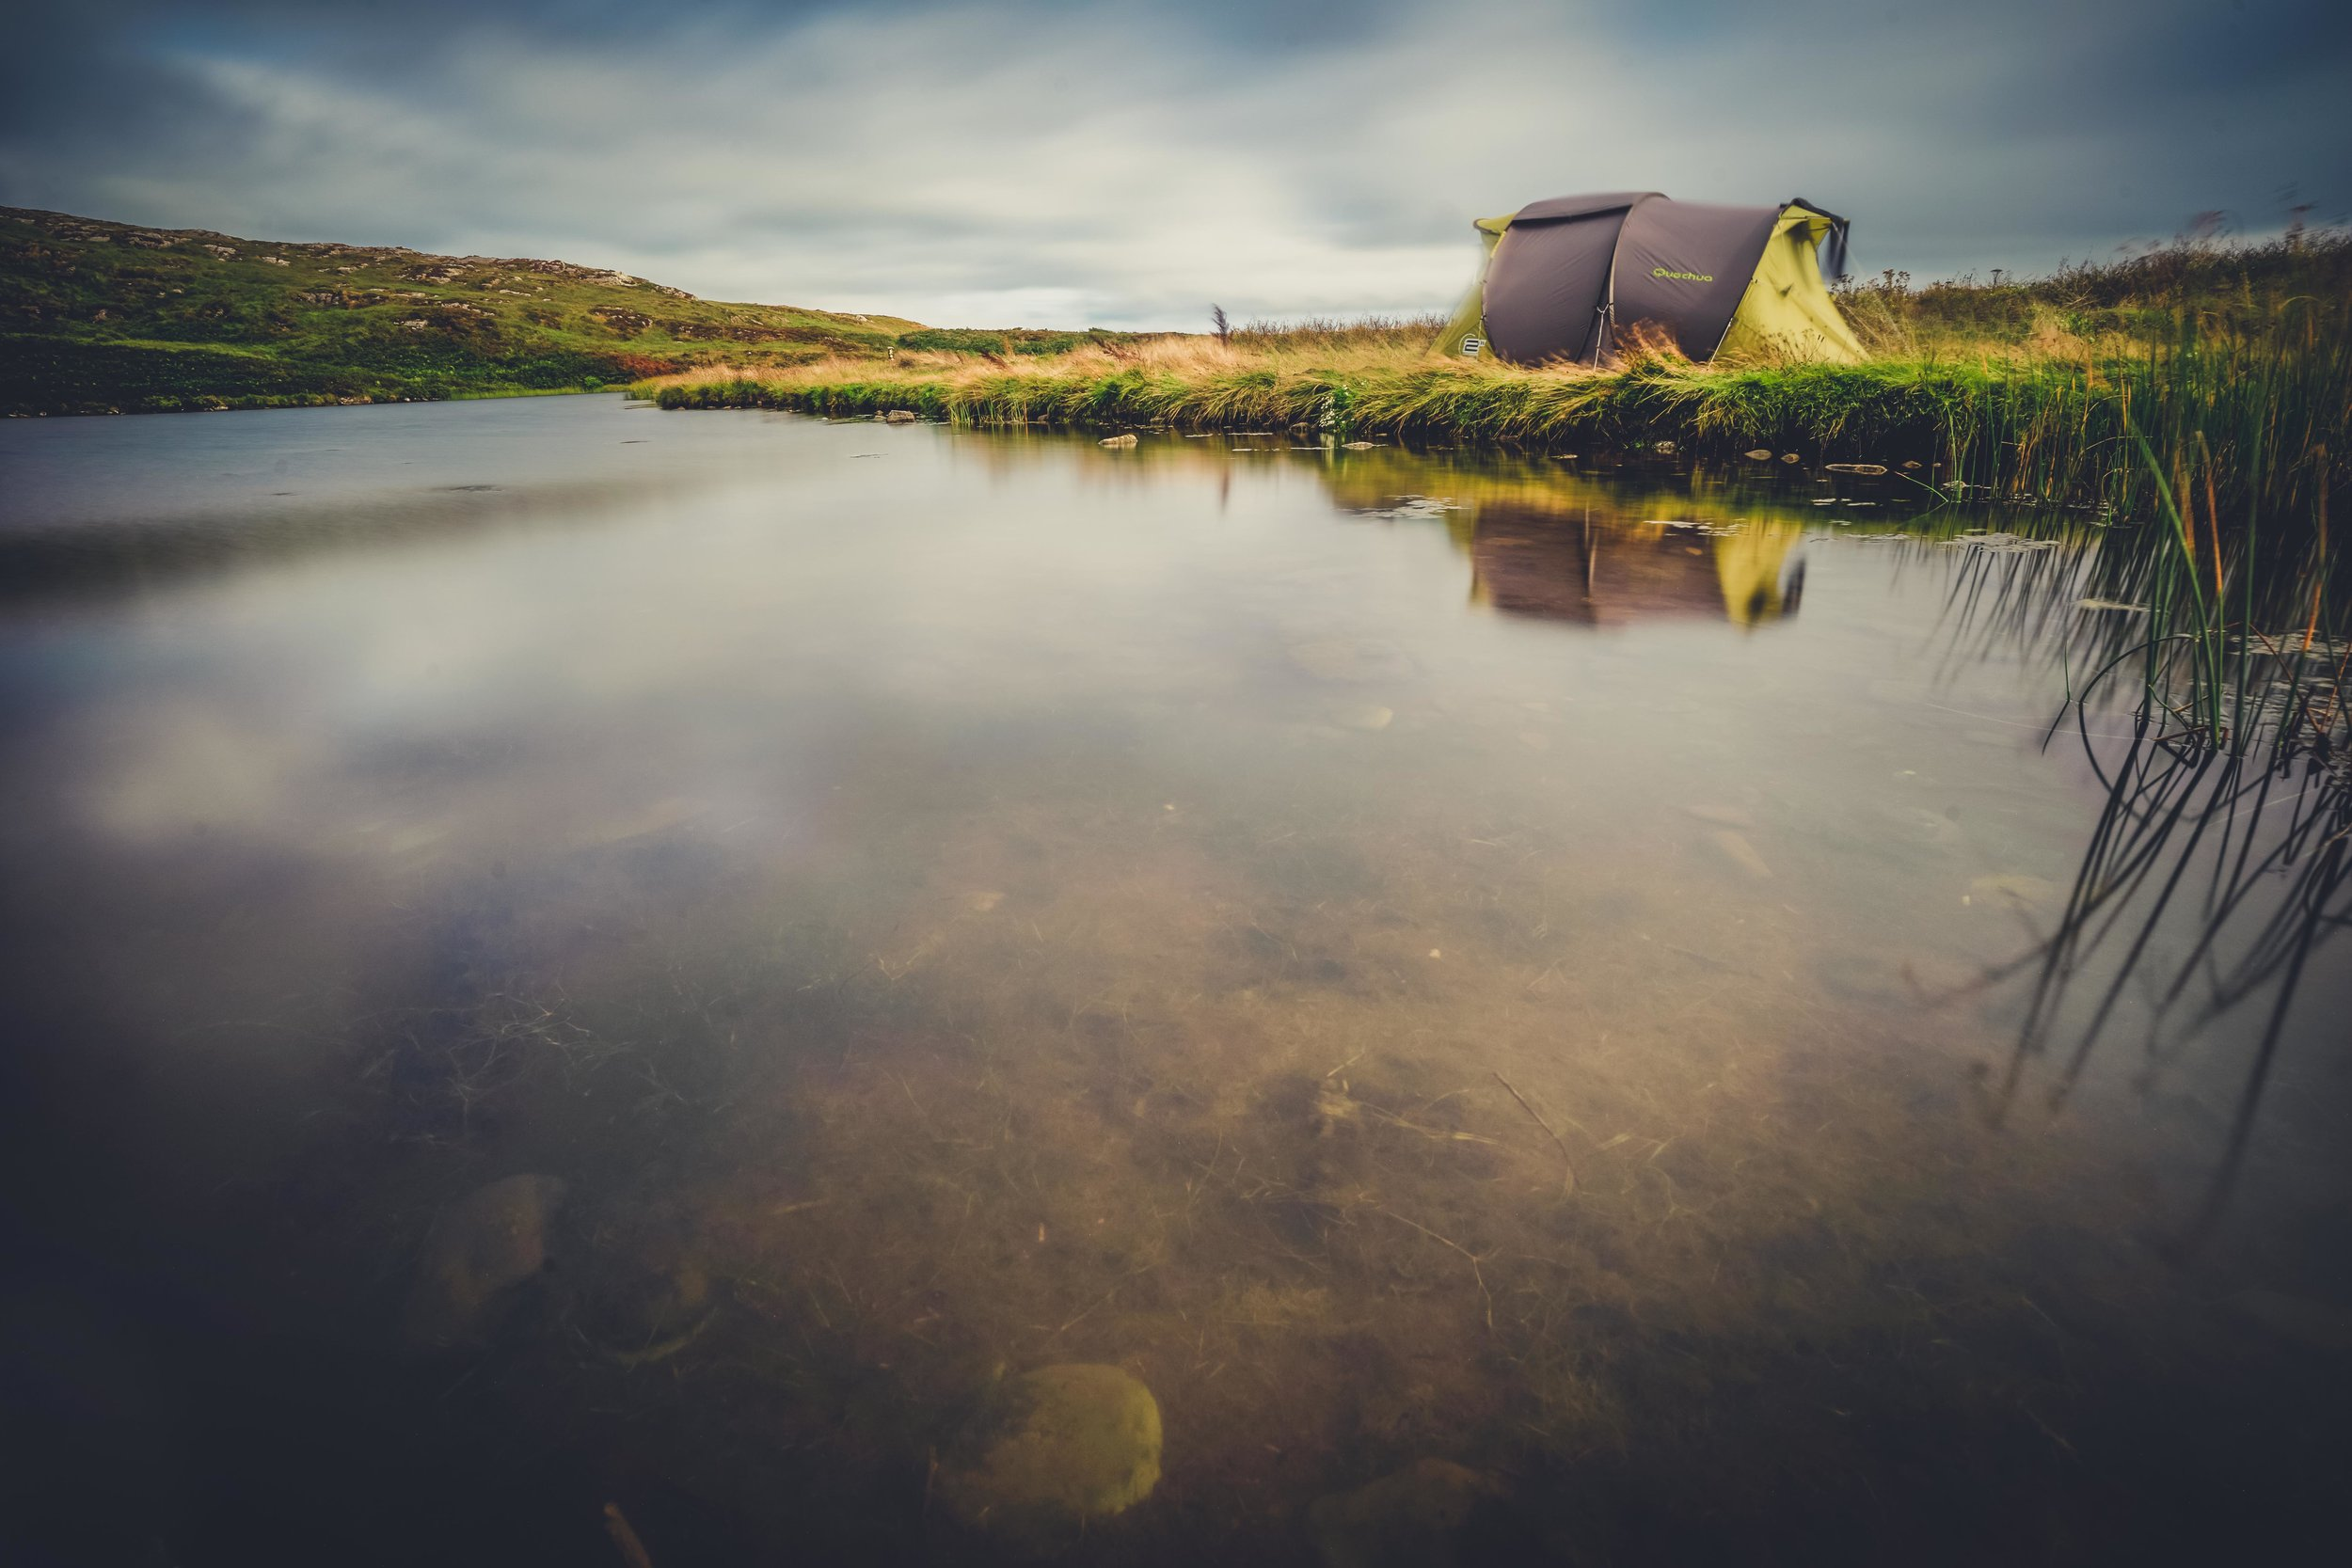 county cork. cork. ireland. irish. history. city. house sitting. old. travel. travel photography. travel photographer. lough hyne. hiking. outdoor. adventure. hiking. camping. our tent..jpg